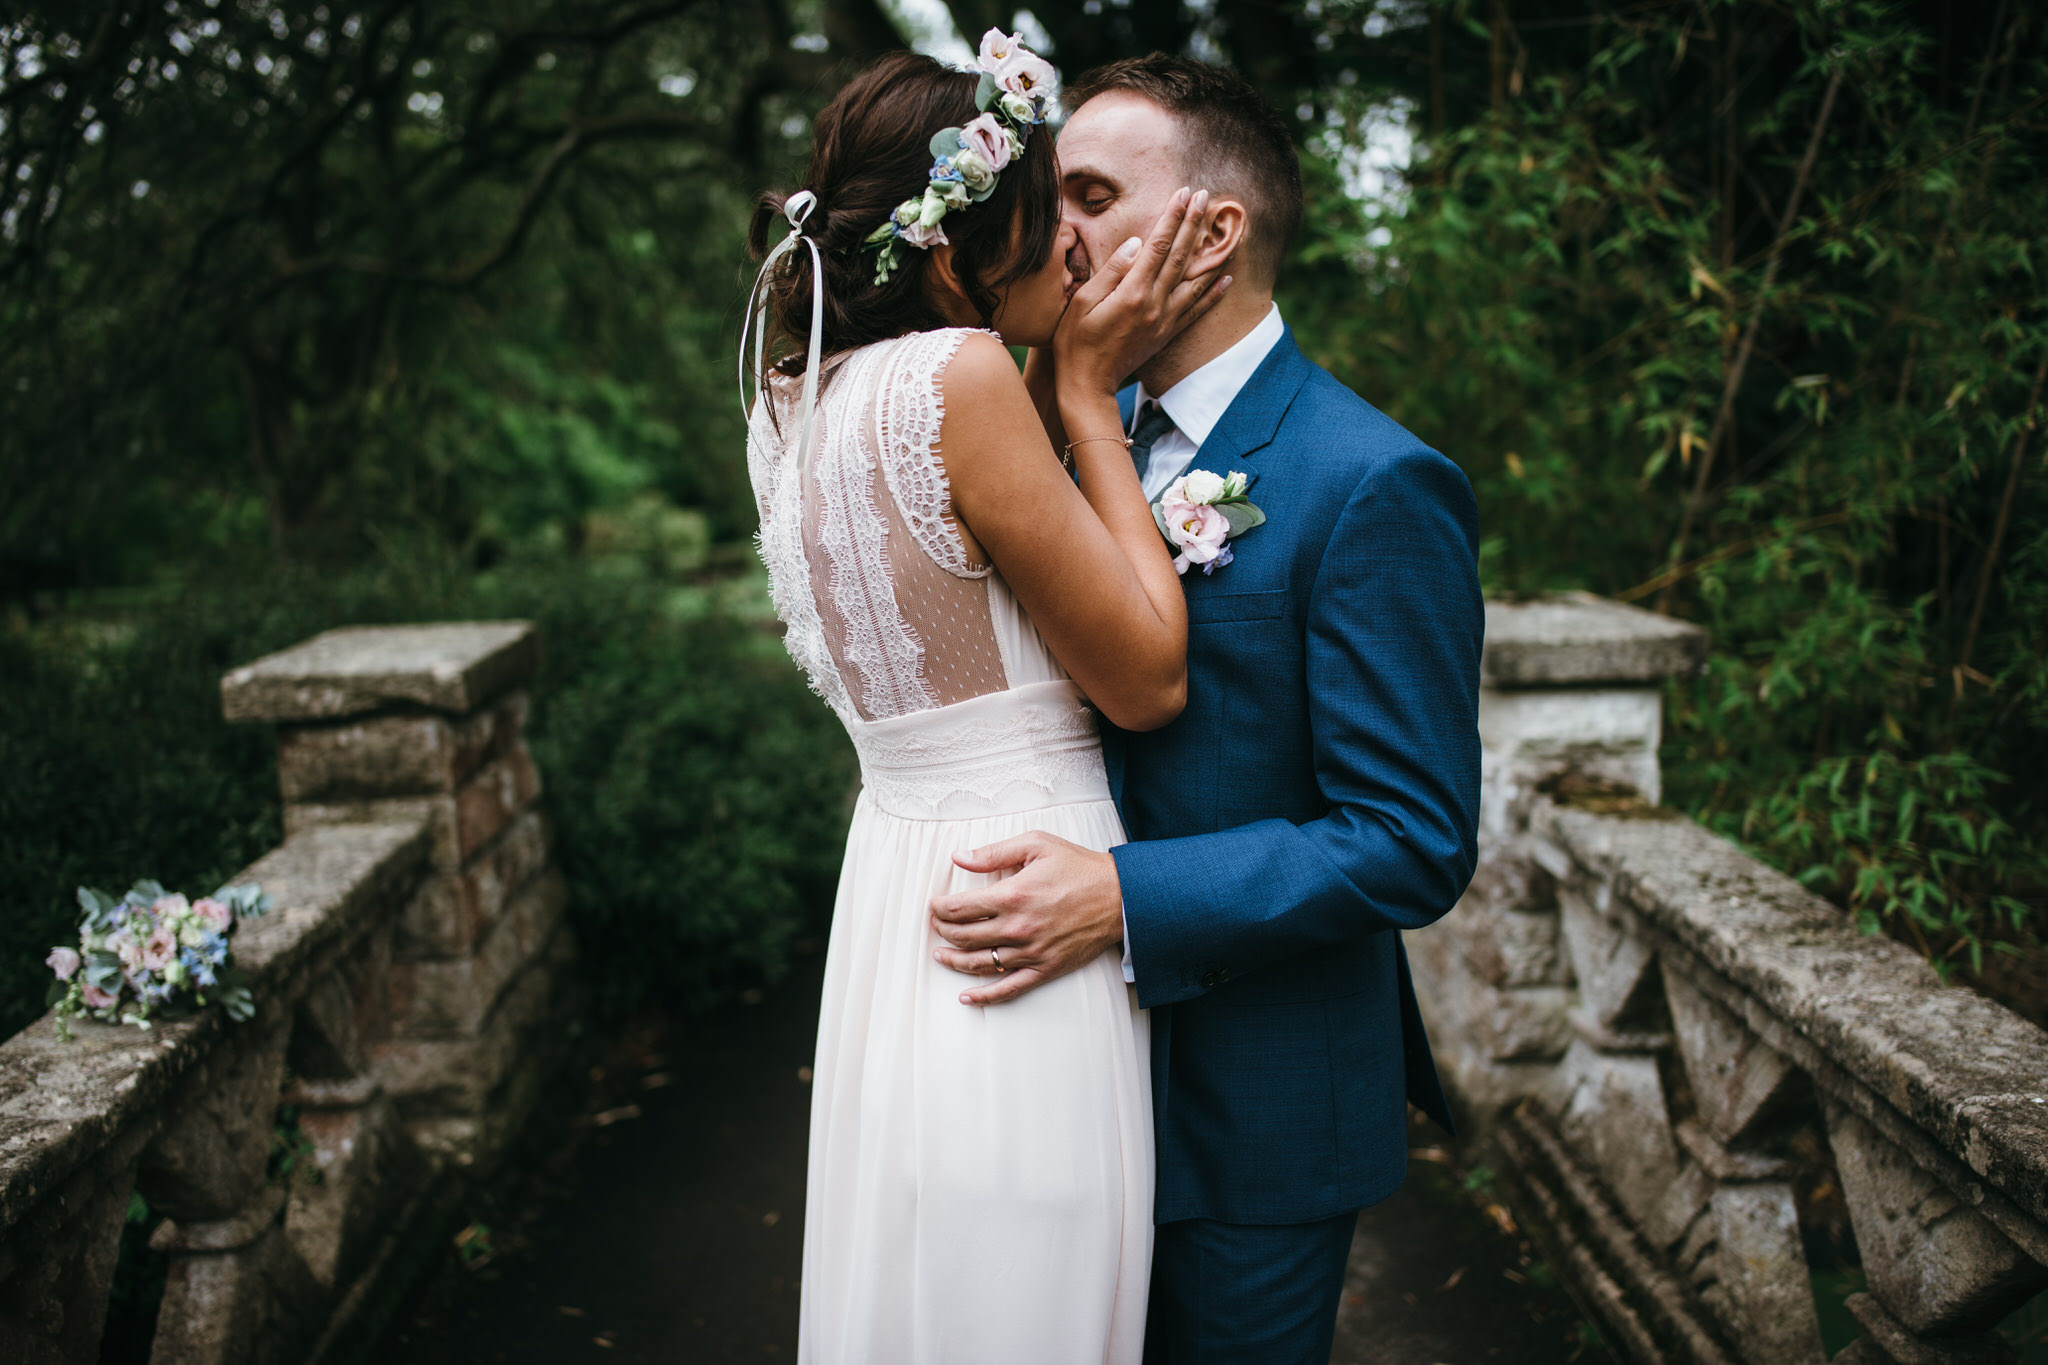 Bride and groom kiss, Botanical Gardens, Victoria Park